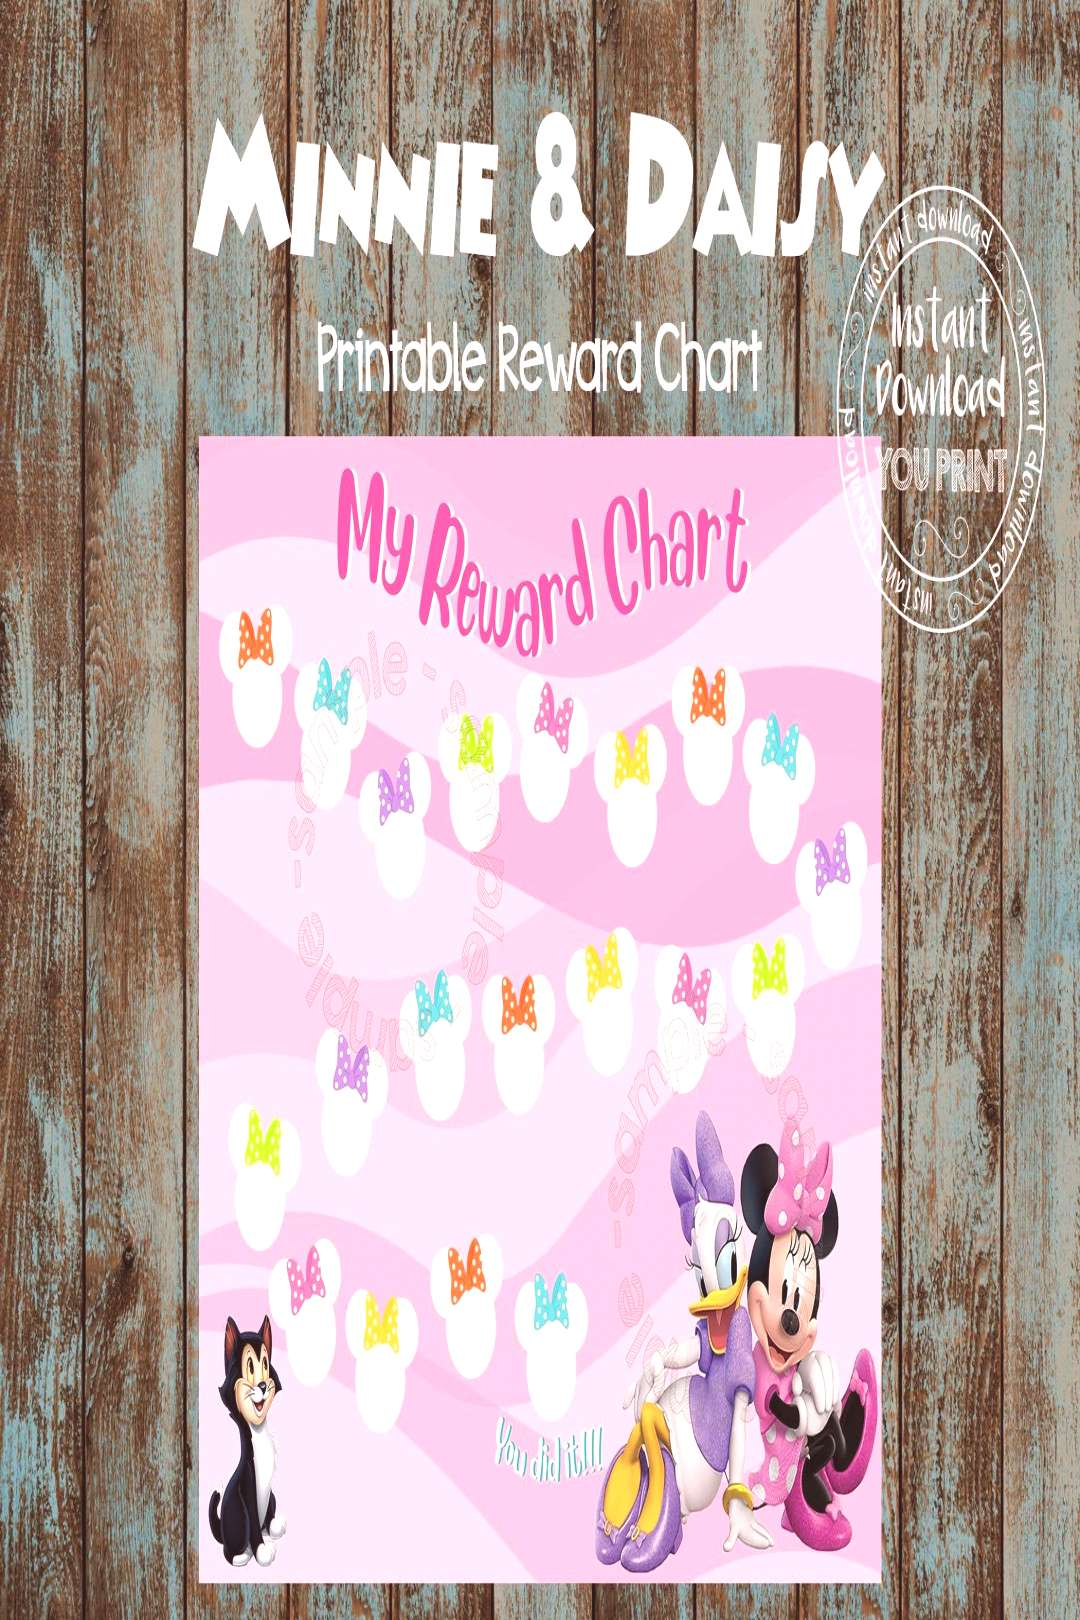 Printable Reward Chart, Minnie Mouse and Daisy Reward Chart, Minnie Mouse Bowtique Chart, Minnie an